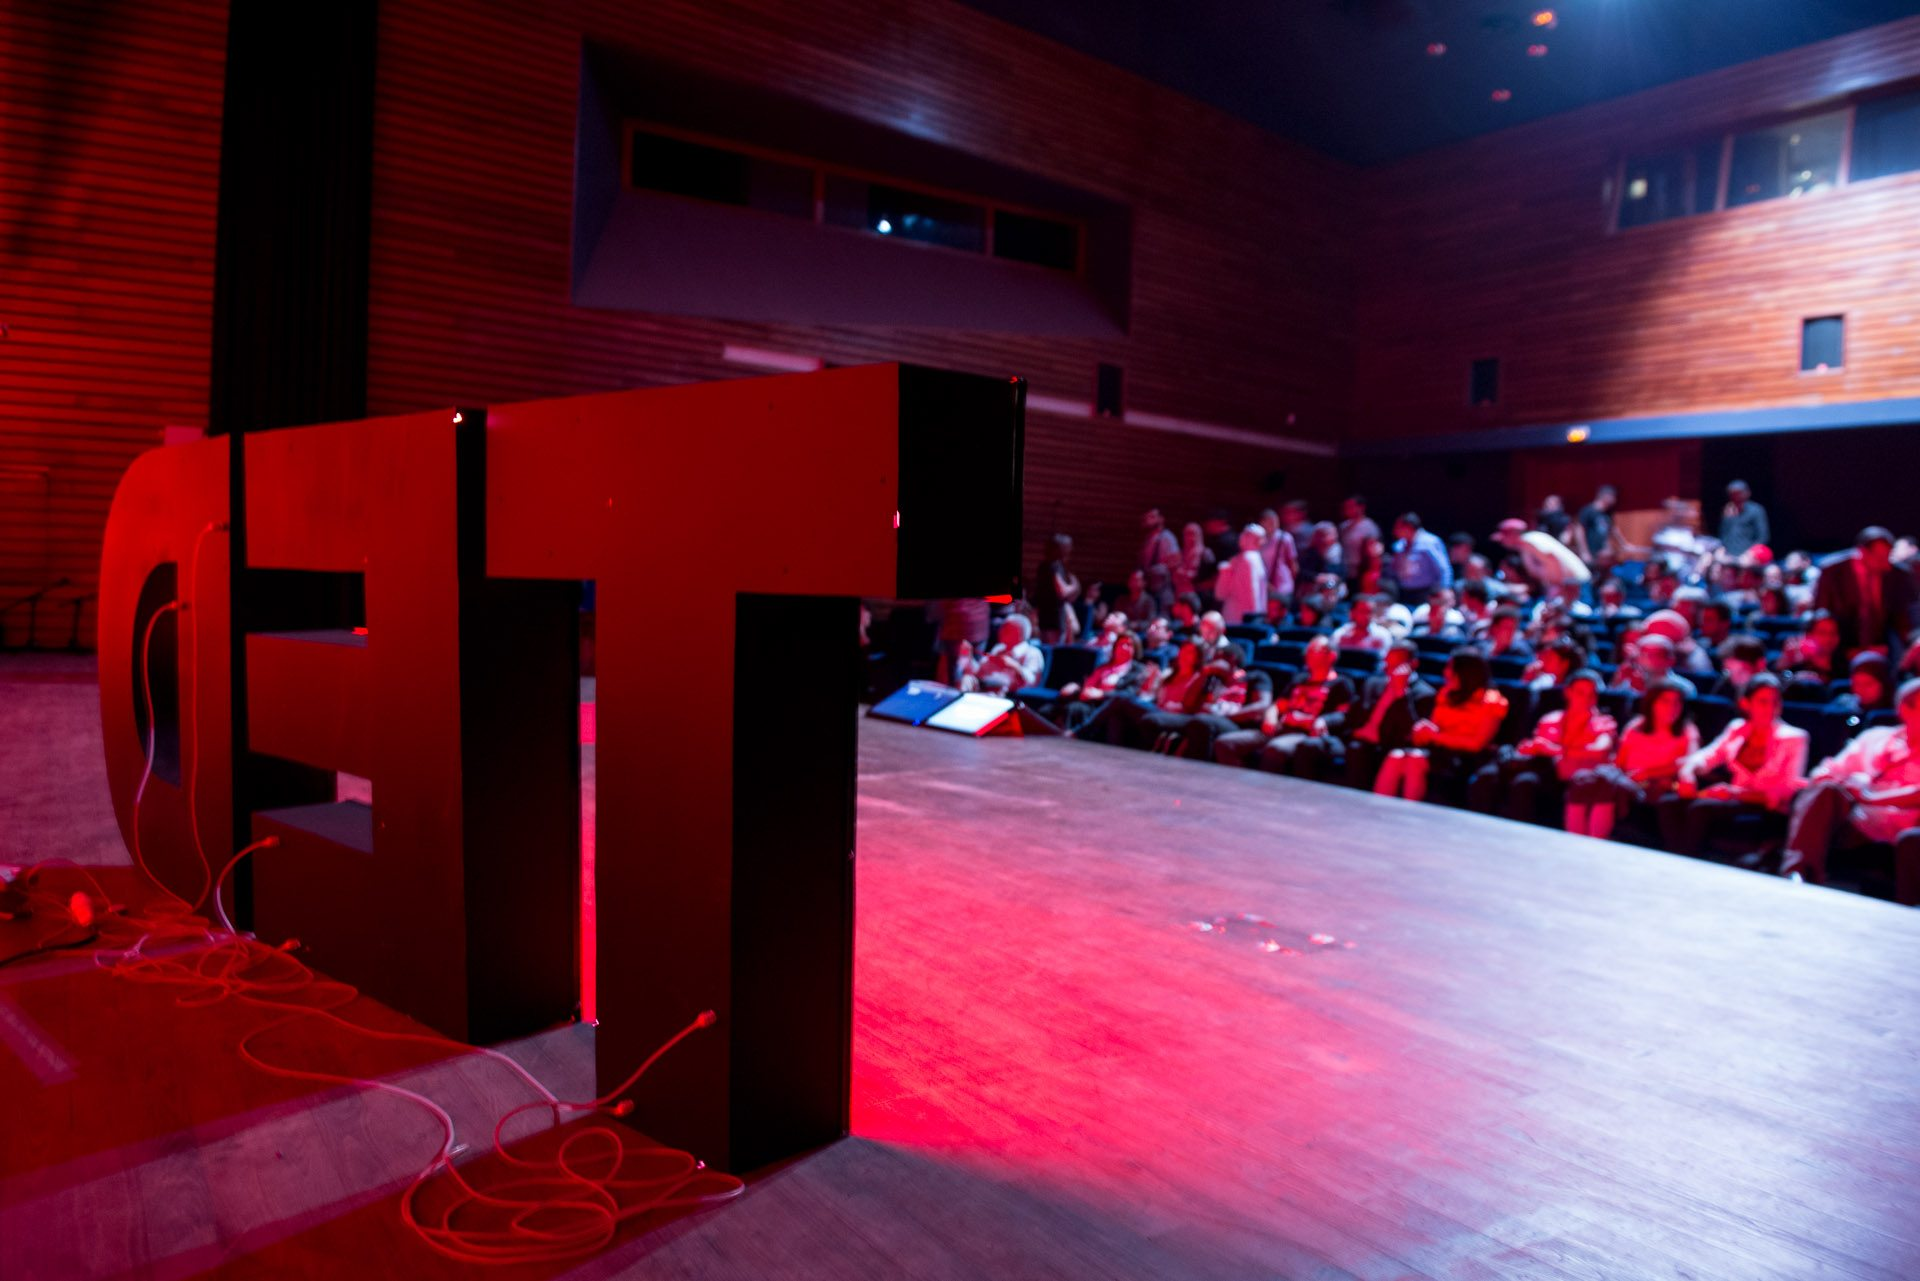 TED Stage presenter How To Make Your Presenter Shine Onstage tedtunis d81 5504